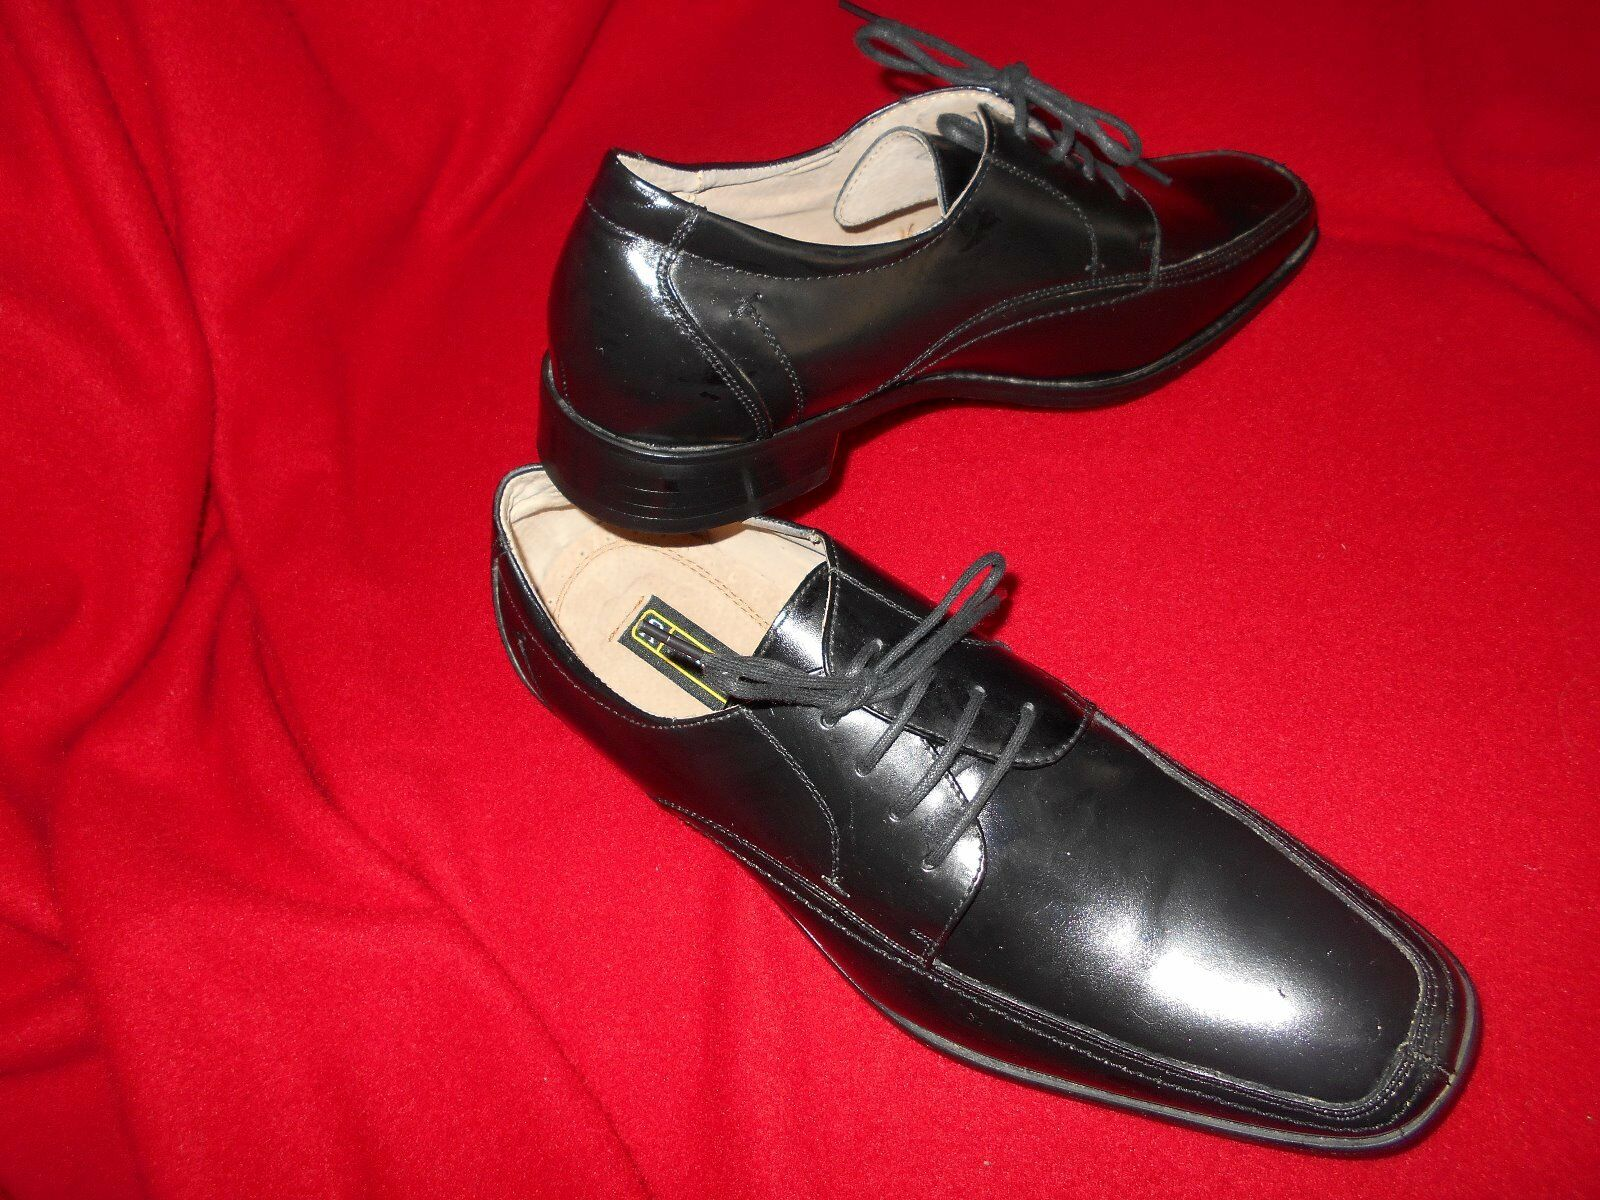 Men's Stacy Adams Oxfords Size 9.5 (D,M) Dress Solid Black Leather